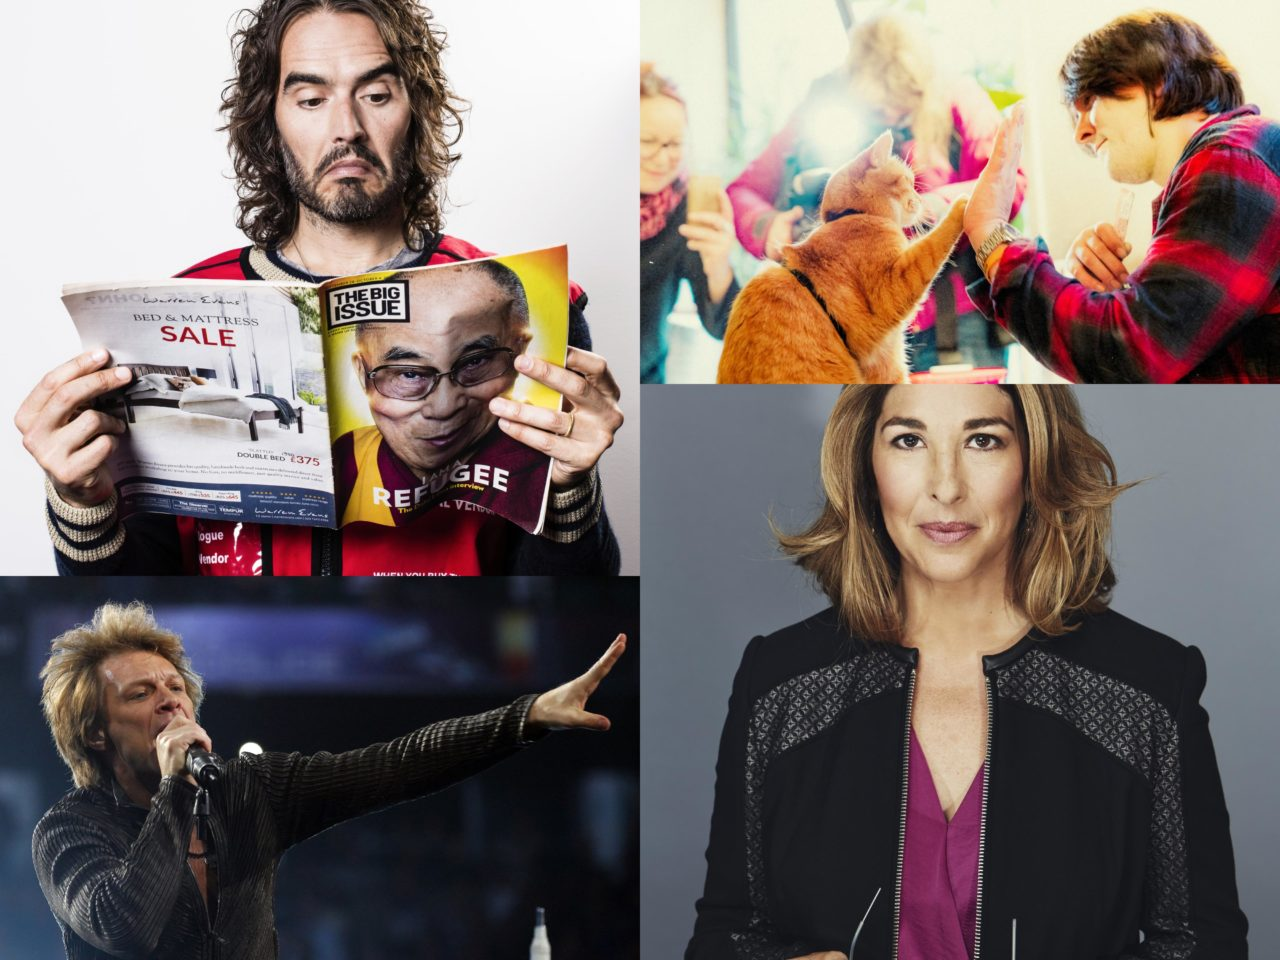 Top Left: Russell Brand (Credit: Louise Haywood-Schiefer); Top Right: Streetcat Bob (Credit: Dimitri Koutsomytis); Bottom left: Jon Bon Jovii (Credit: REUTERS/Brian Snyder); Bottom Right: Naomi Klein (Credit: Kourosh Keshiri)